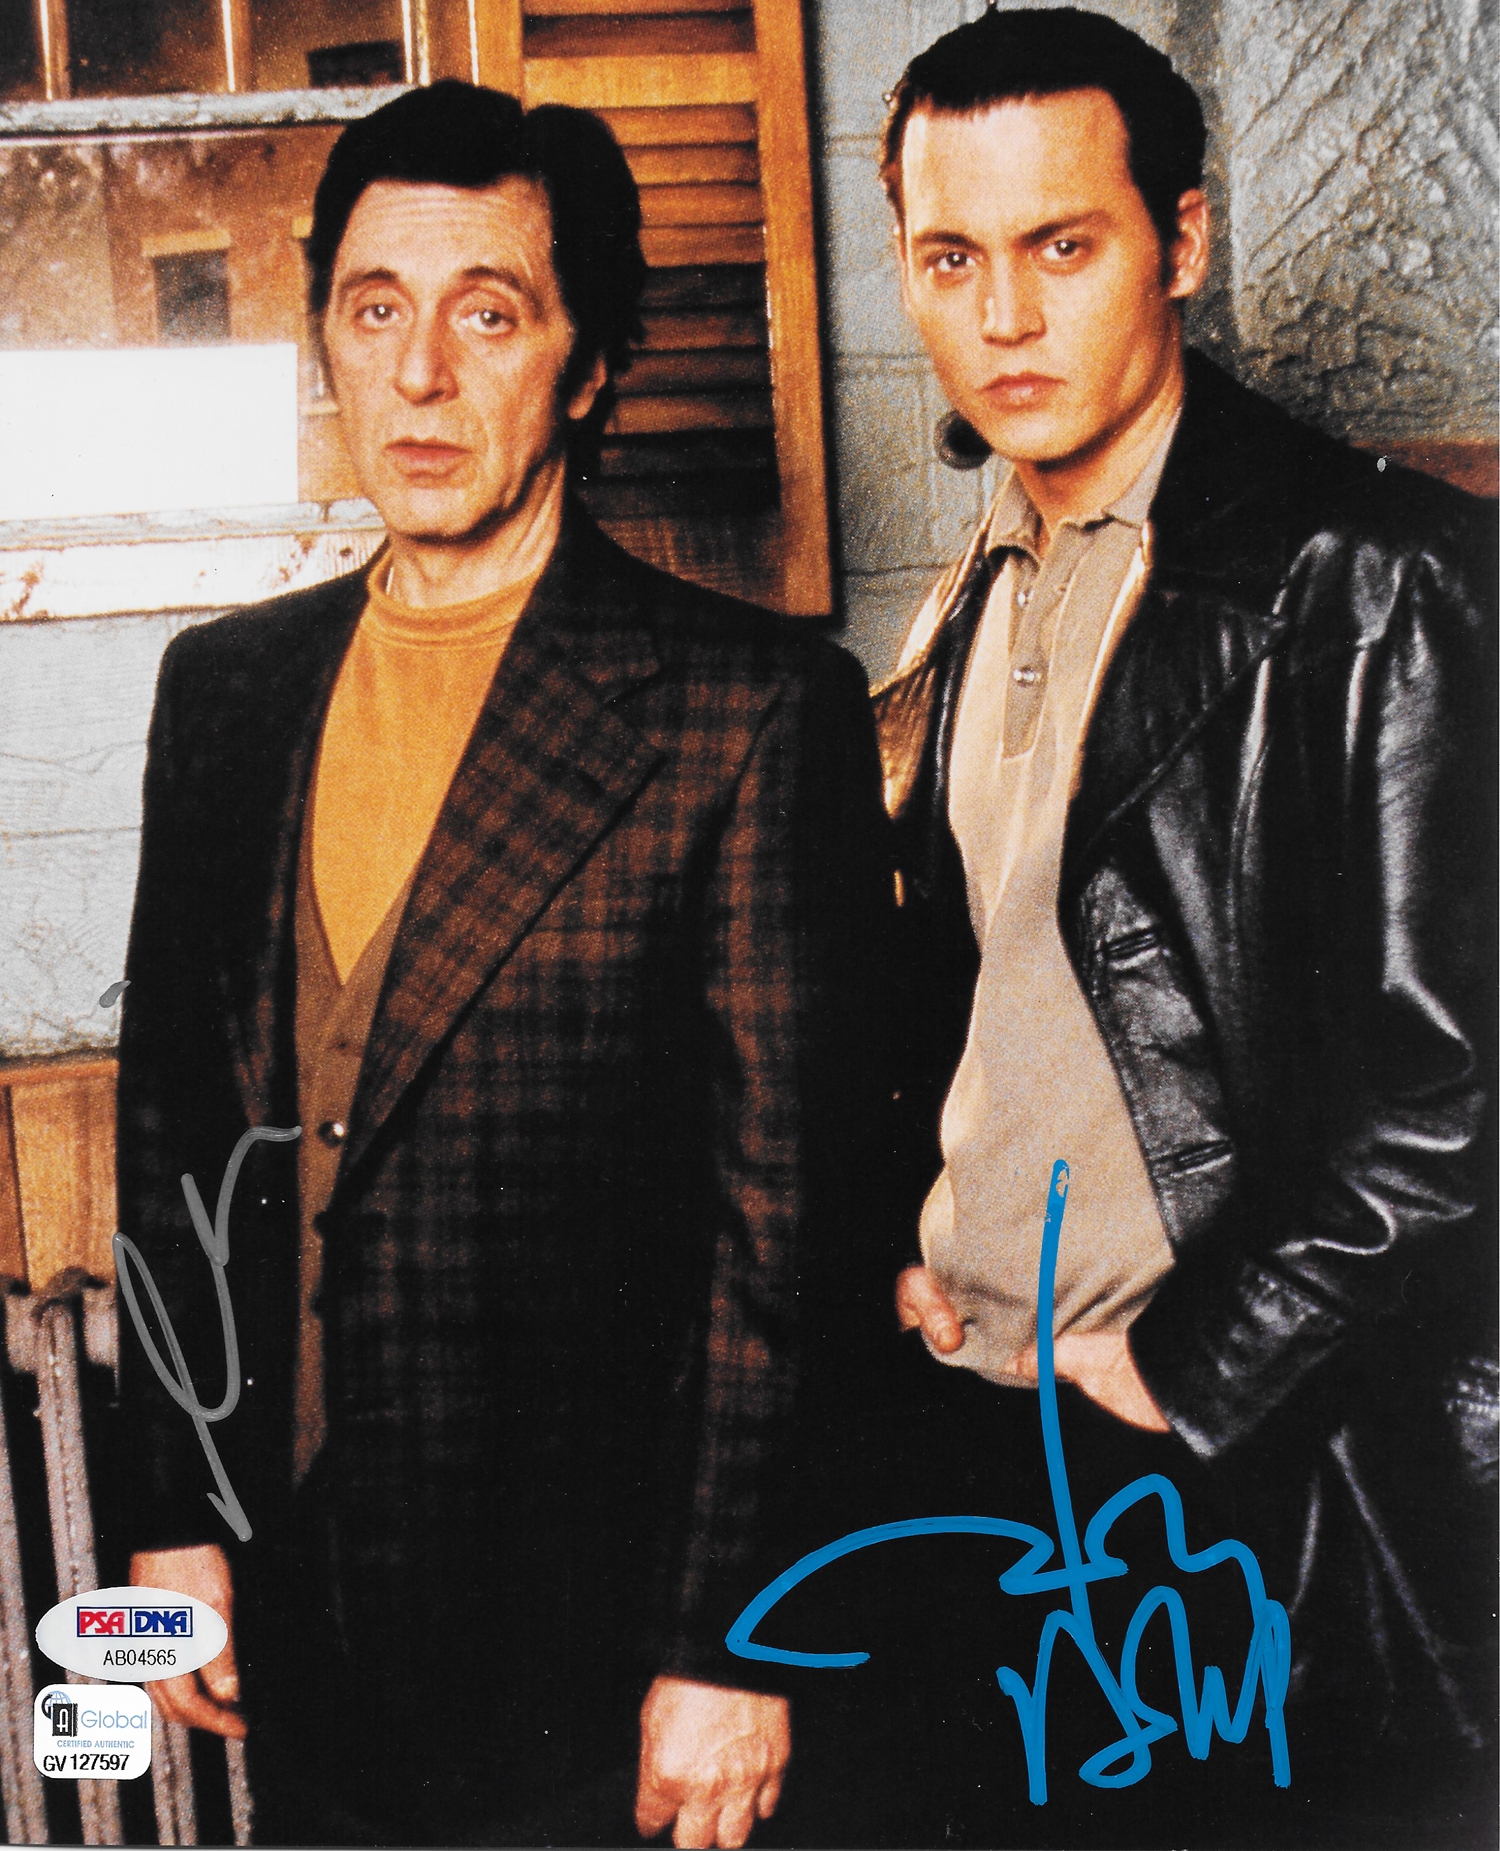 a movie analysis of donnie brasco starring al pacino and johnny depp That's when the new movie donnie brasco, starring al pacino and johnny depp, opens at the hollywood 18 in port richey the movie is based on pistone's book donnie brasco, my undercover life in the mafia the screenplay is by paul attanasio.